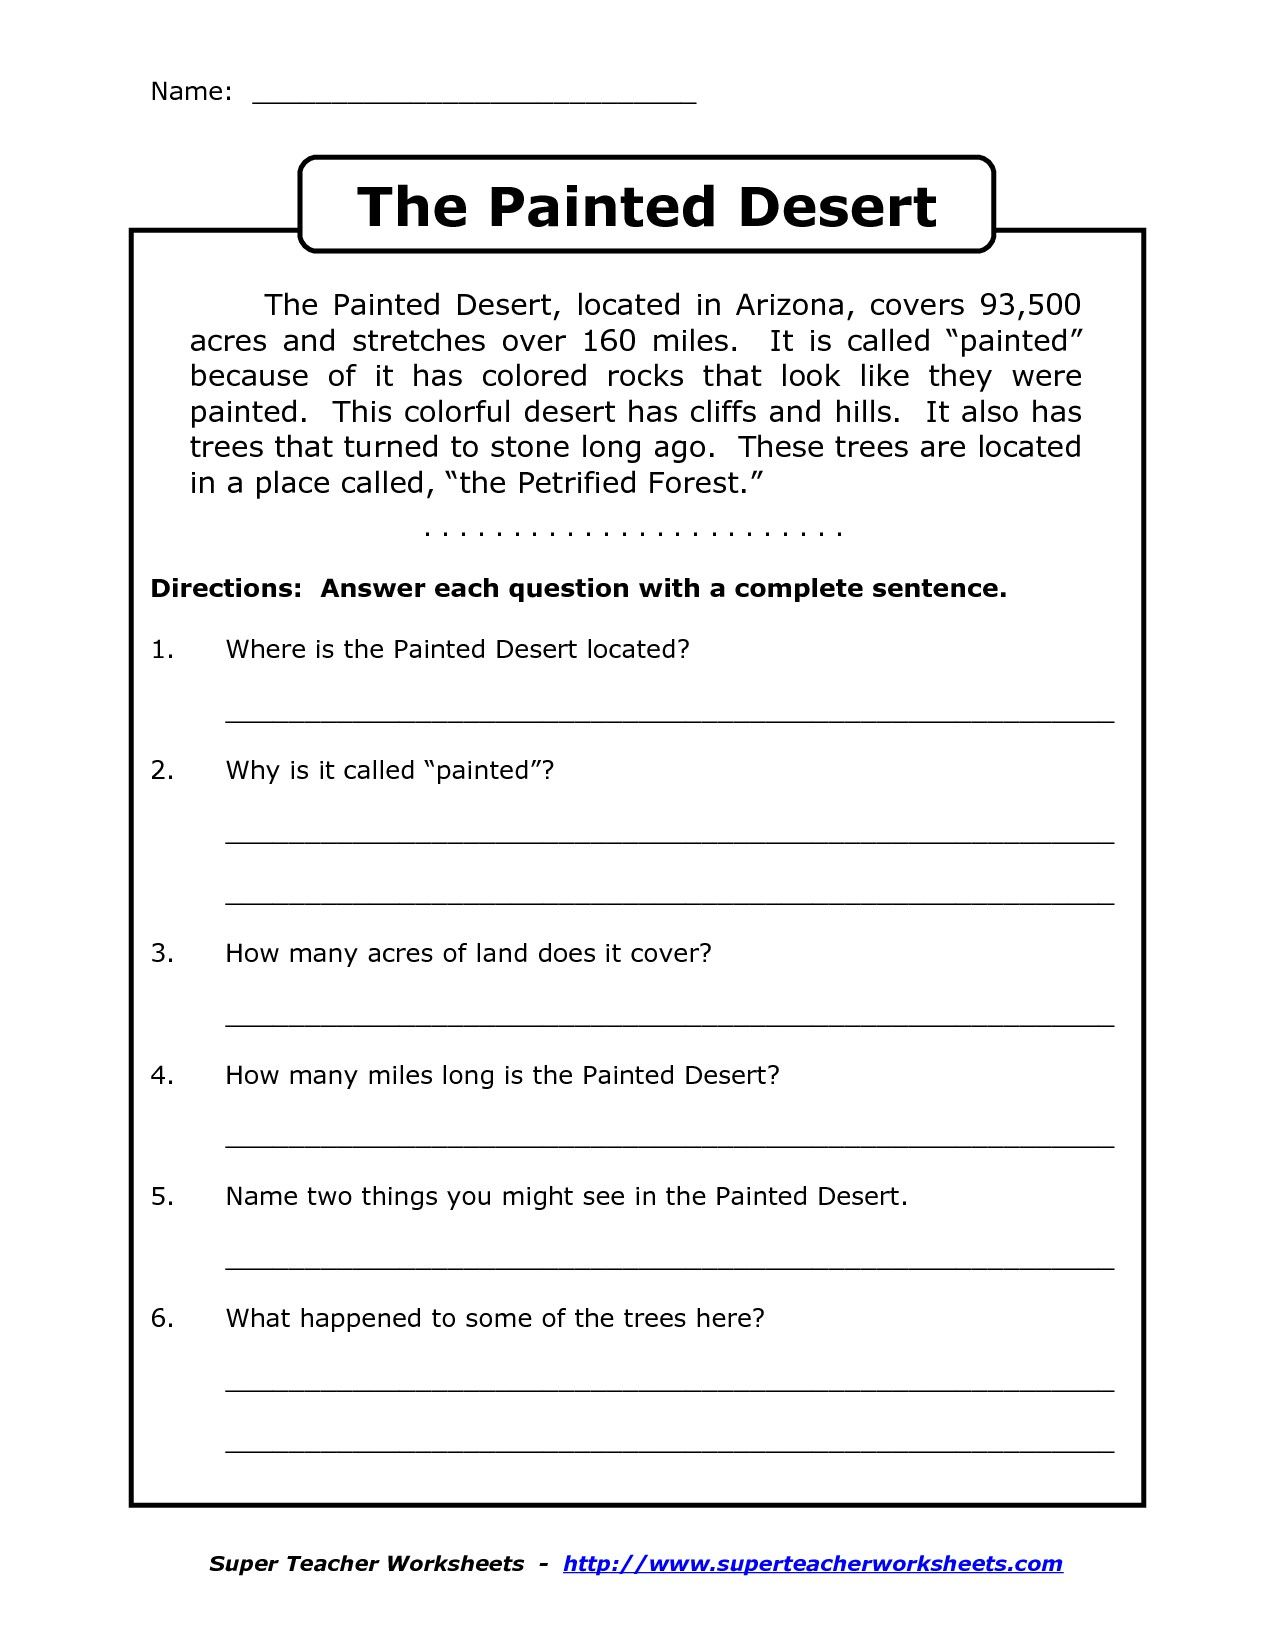 Worksheet 3rd Grade Reading Comprehension Passage worksheet reading comprehension grade 2 worksheets noconformity 1000 images about tina2 on pinterest and morning